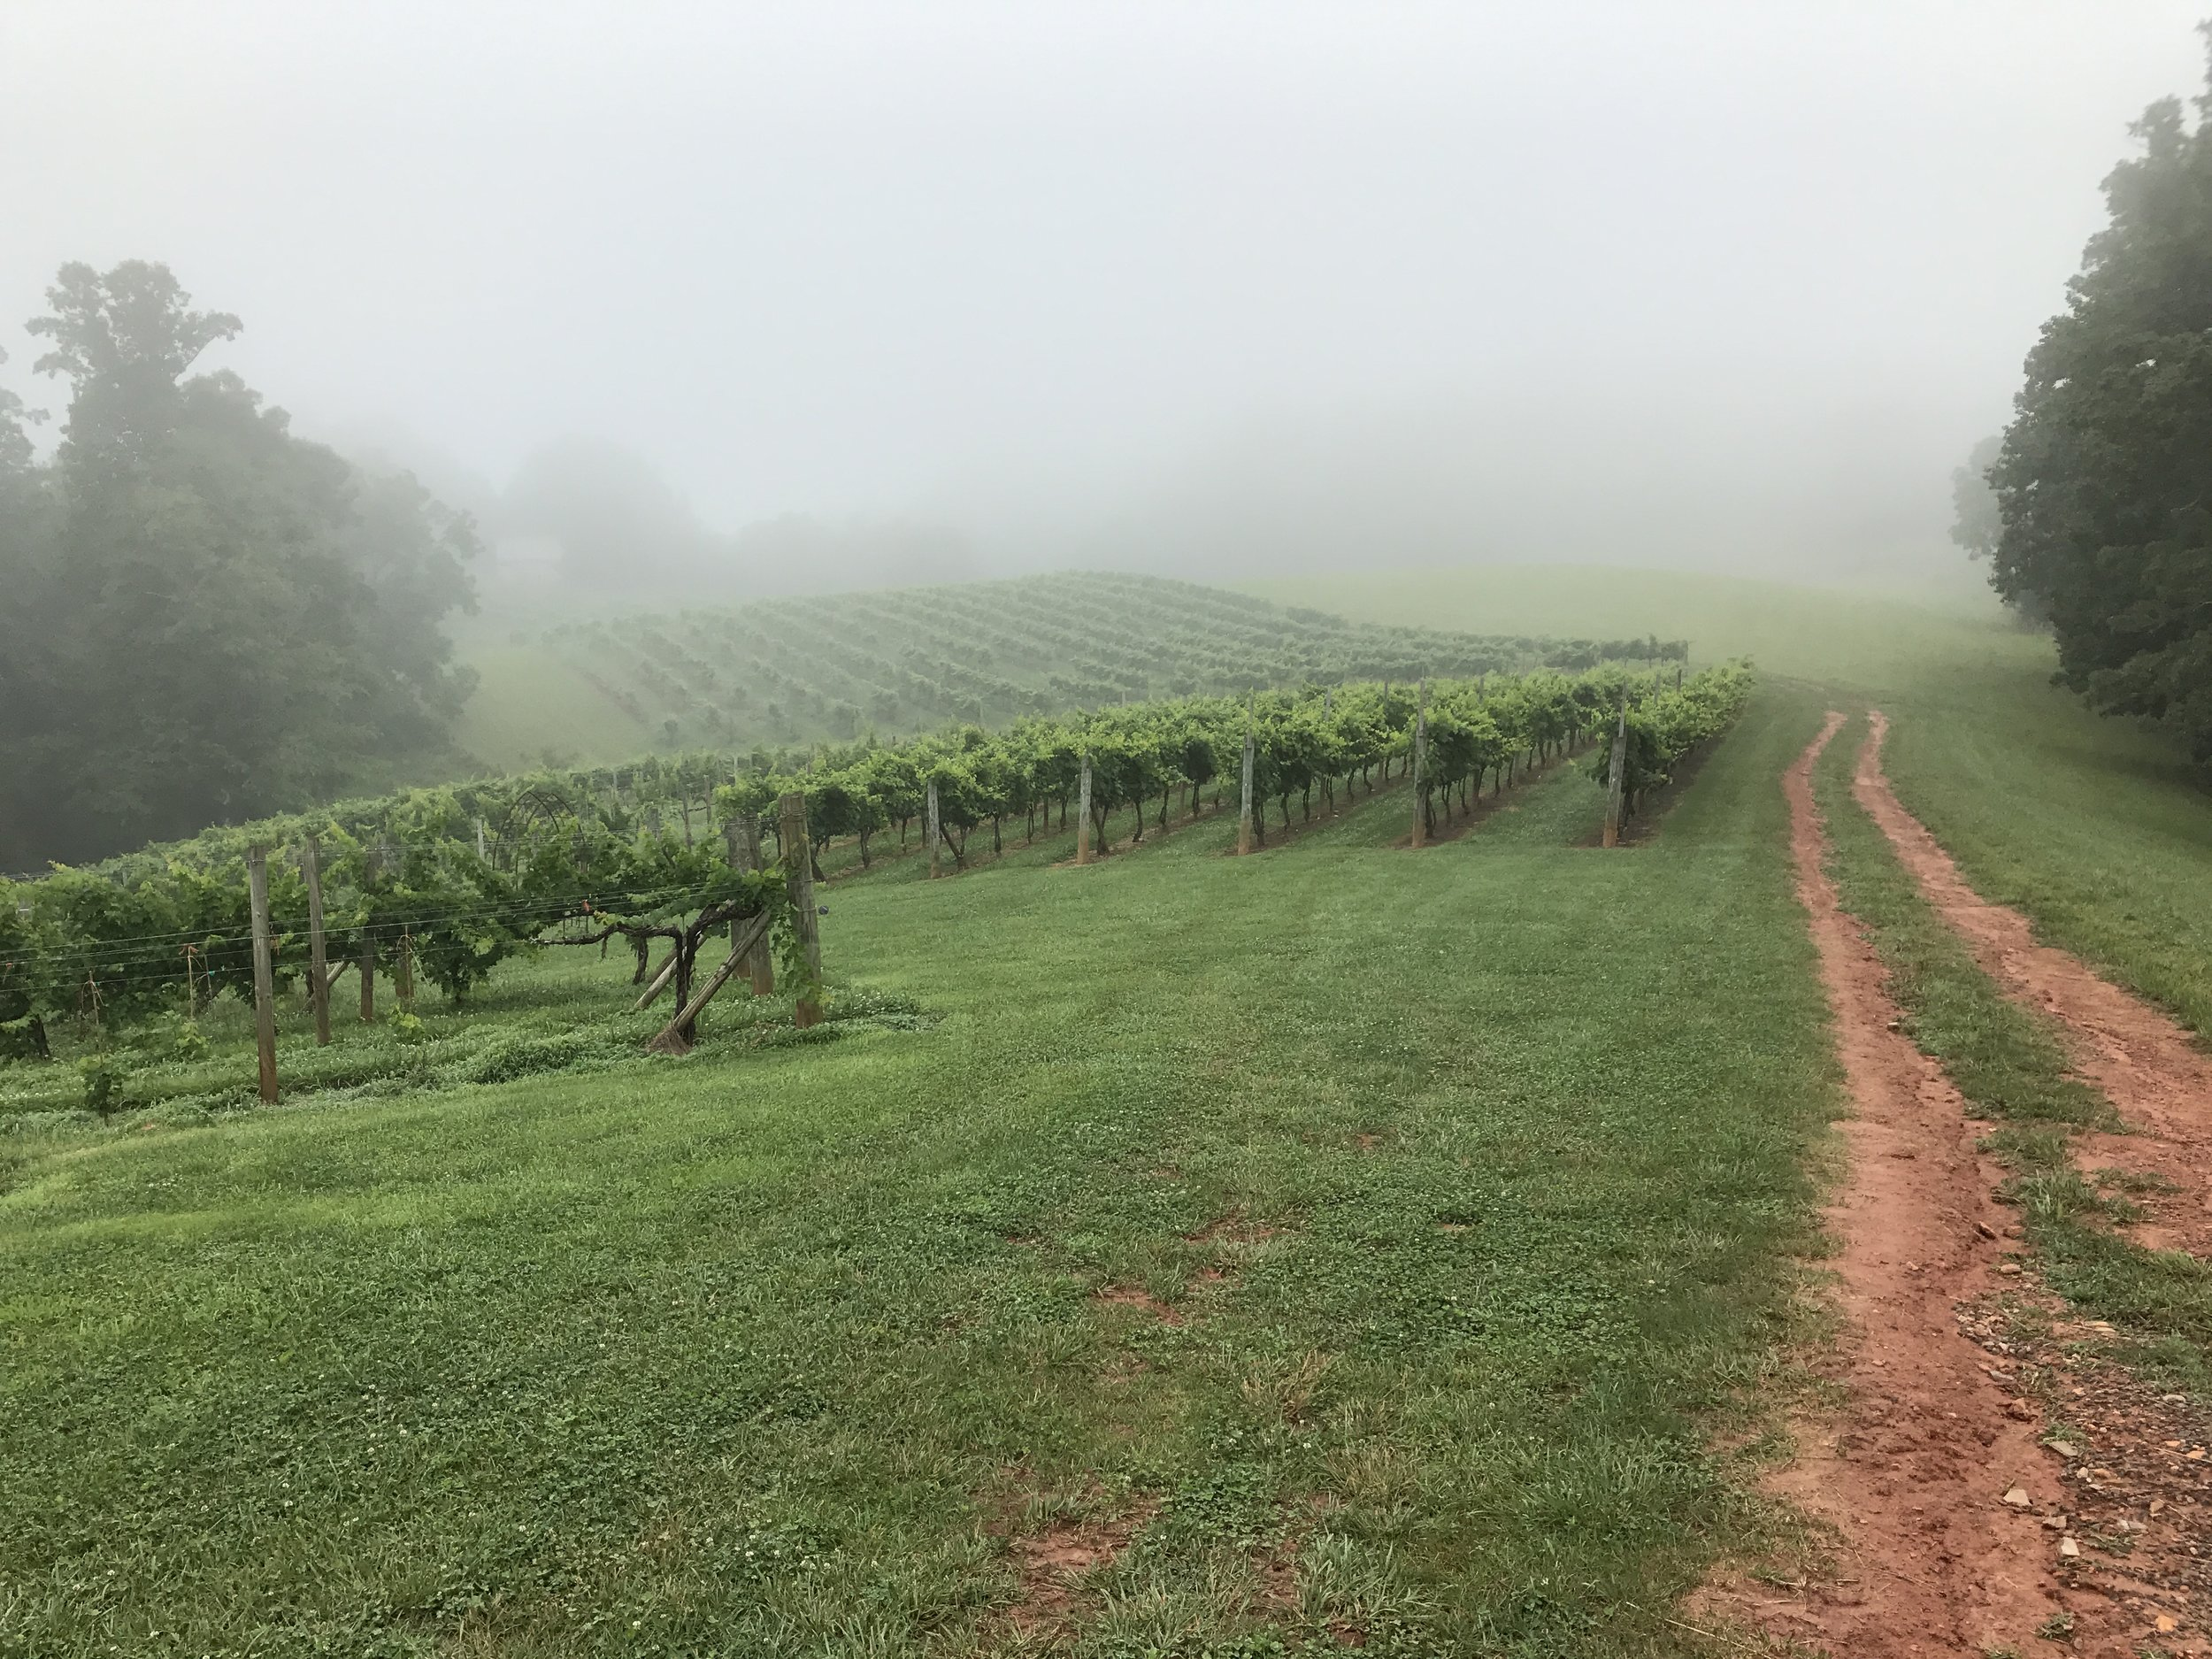 Foggy morning in the vineyard